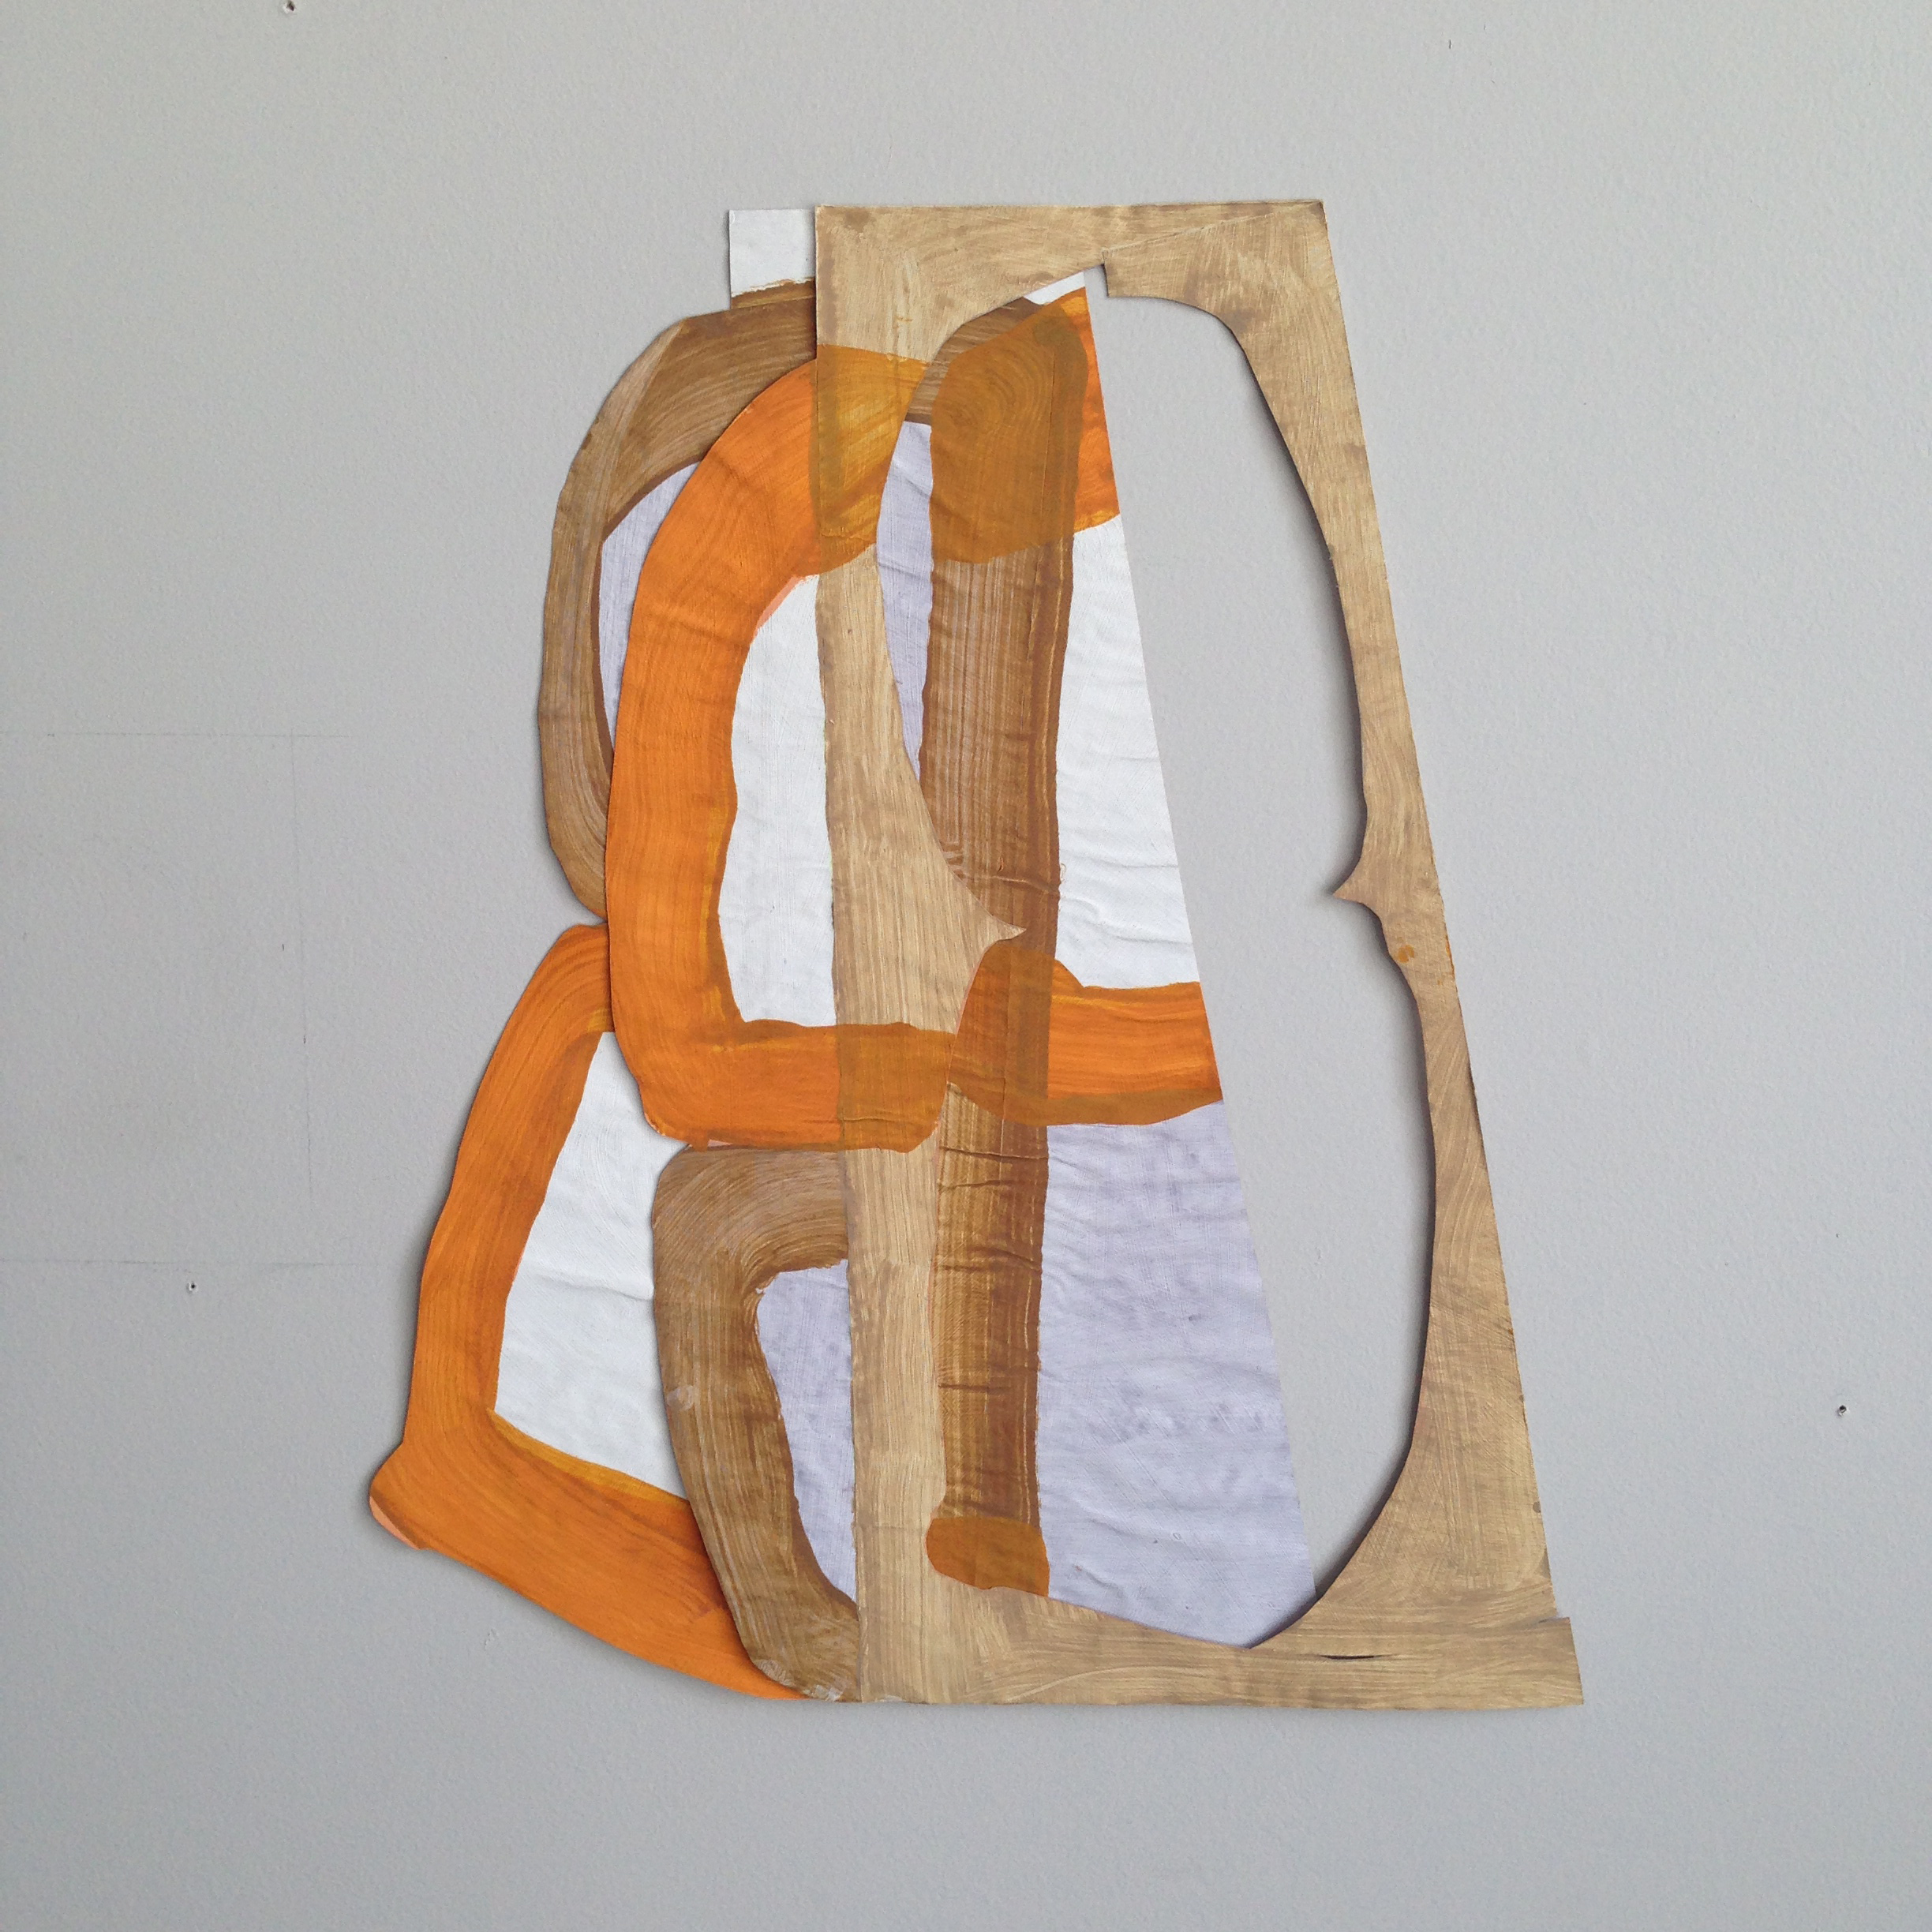 Disrupted Drawing Small 18, 2015, gesso and acrylic with collage on rice paper, 16 1/4 x 13 1/4""